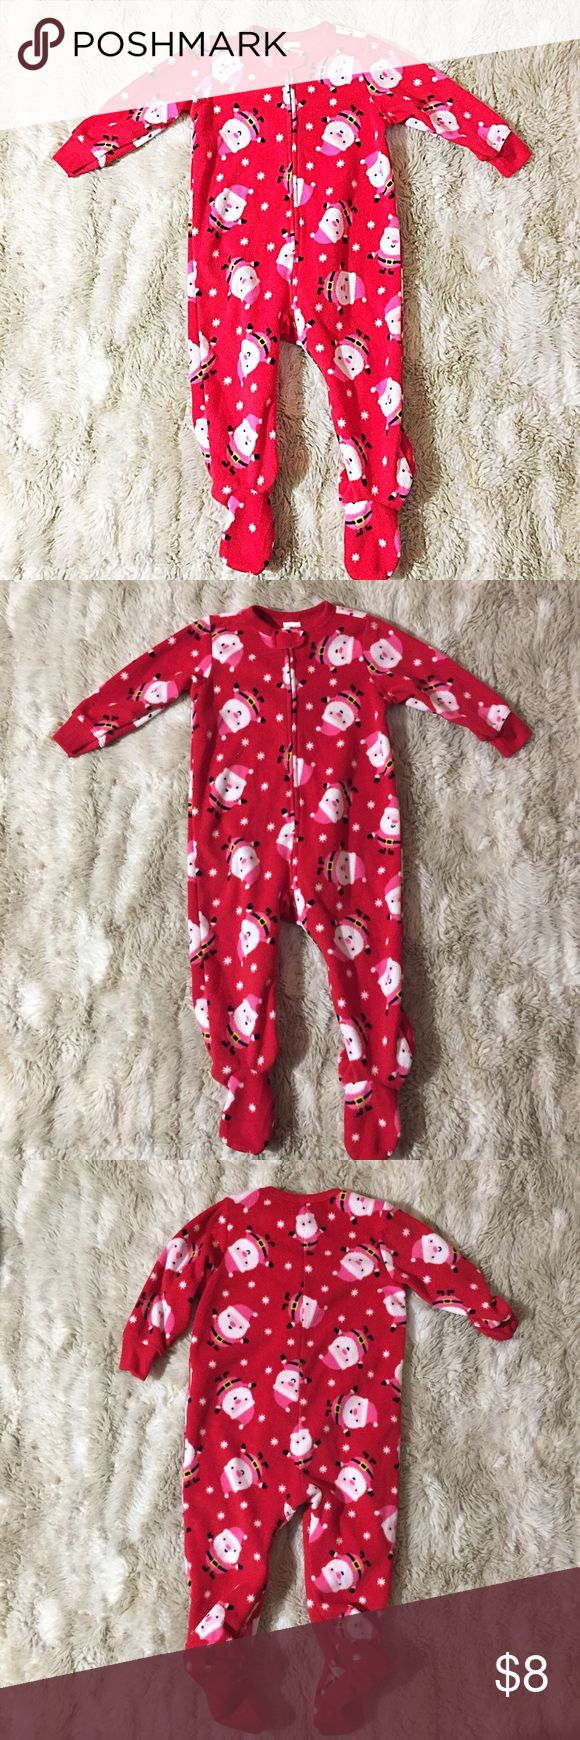 Old Navy Santa Fleece Christmas Footie Pajamas Soft and cozy zip up Footie Pajamas from Old Navy. Fun Santa Clause Christmas Print. Size 18-24 months.  #oldnavy #baby #toddler #zipup #fleece #christmas #santa #footiepajamas #pajamas #warm #soft #zipup #cozy #santaclause #festive #punkydoodle  No modeling Smoke and pet free home  I do discount bundles Old Navy Pajamas